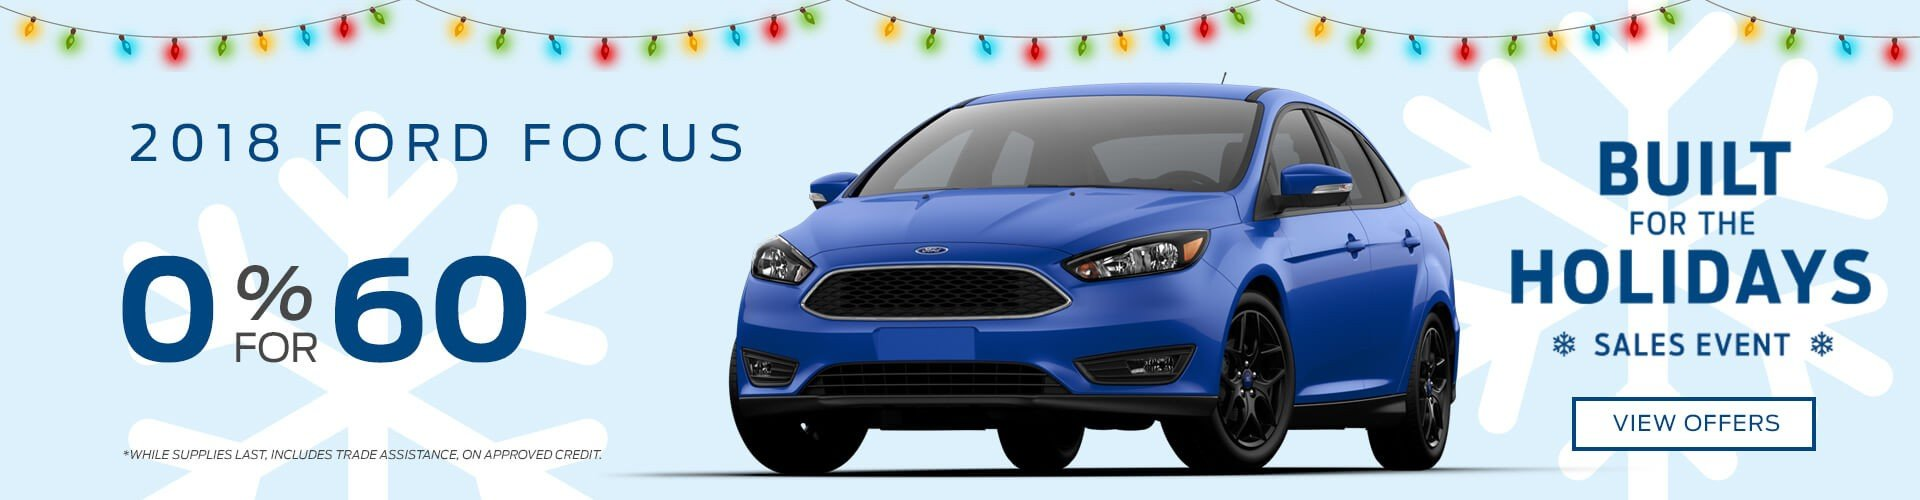 Special offer on 2018 Ford Focus 2018 Ford Focus